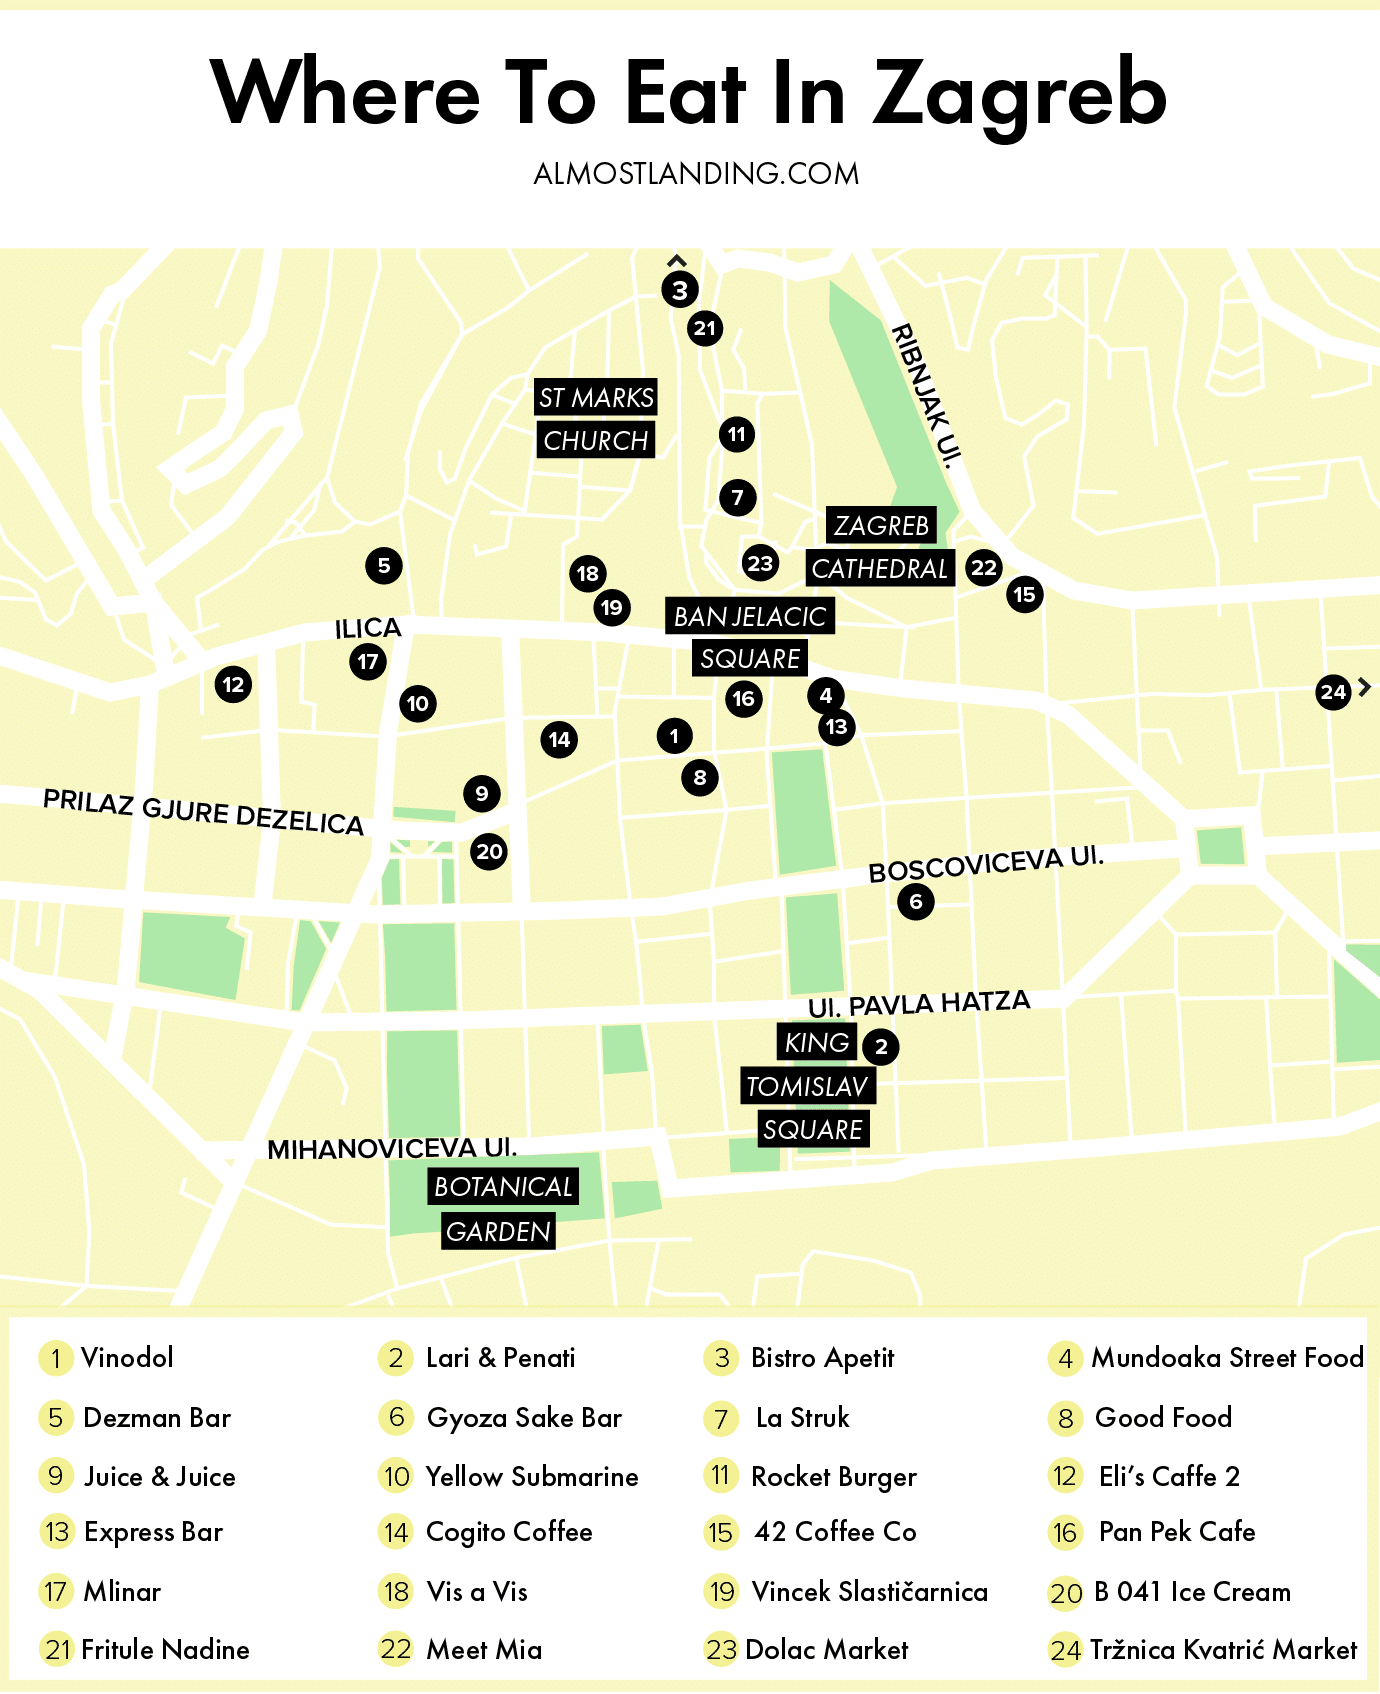 Where To Eat In Zagreb Map